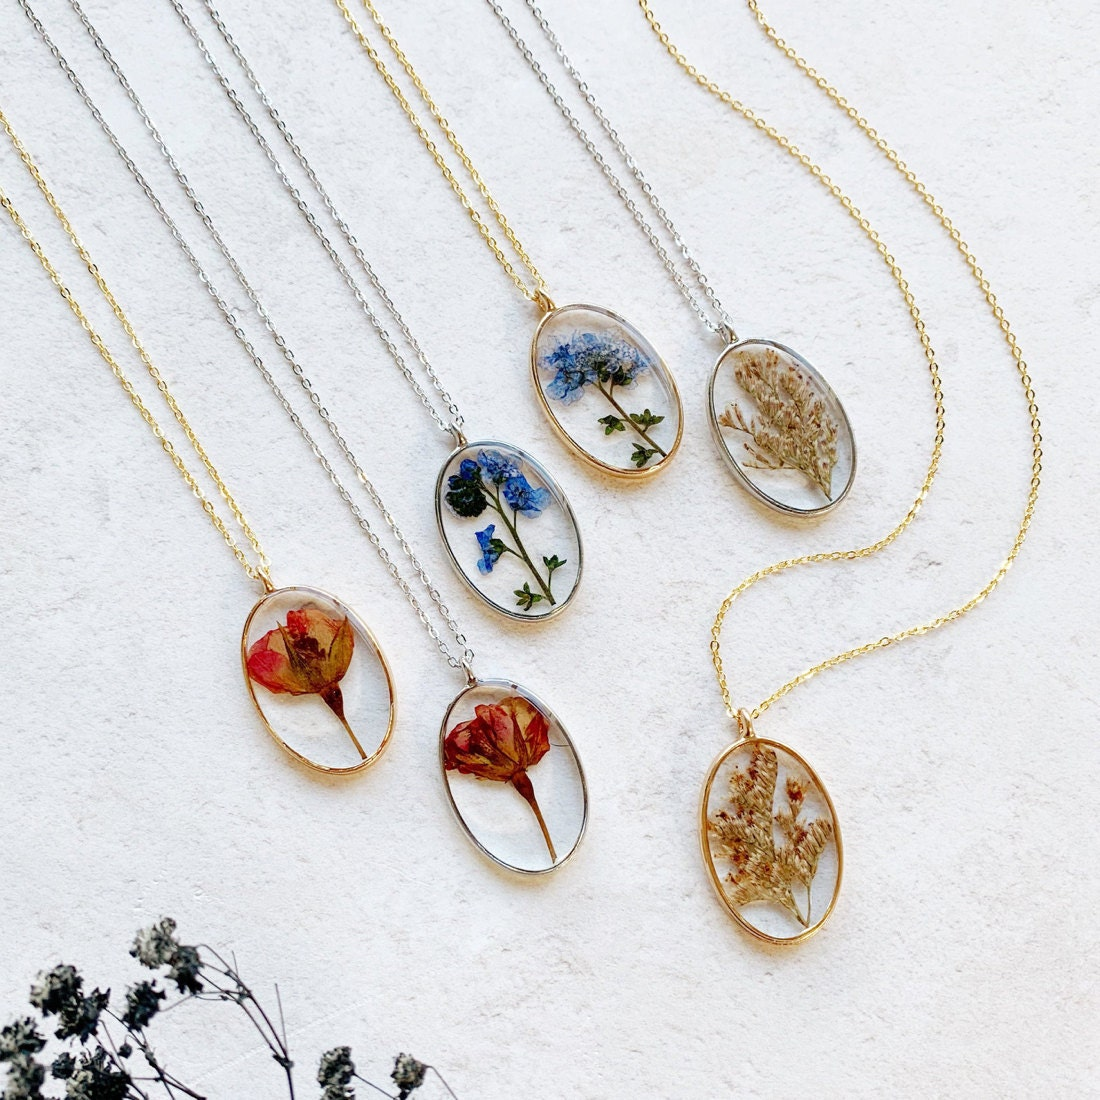 A collection of pressed-flower necklaces from Electric Eccentricity